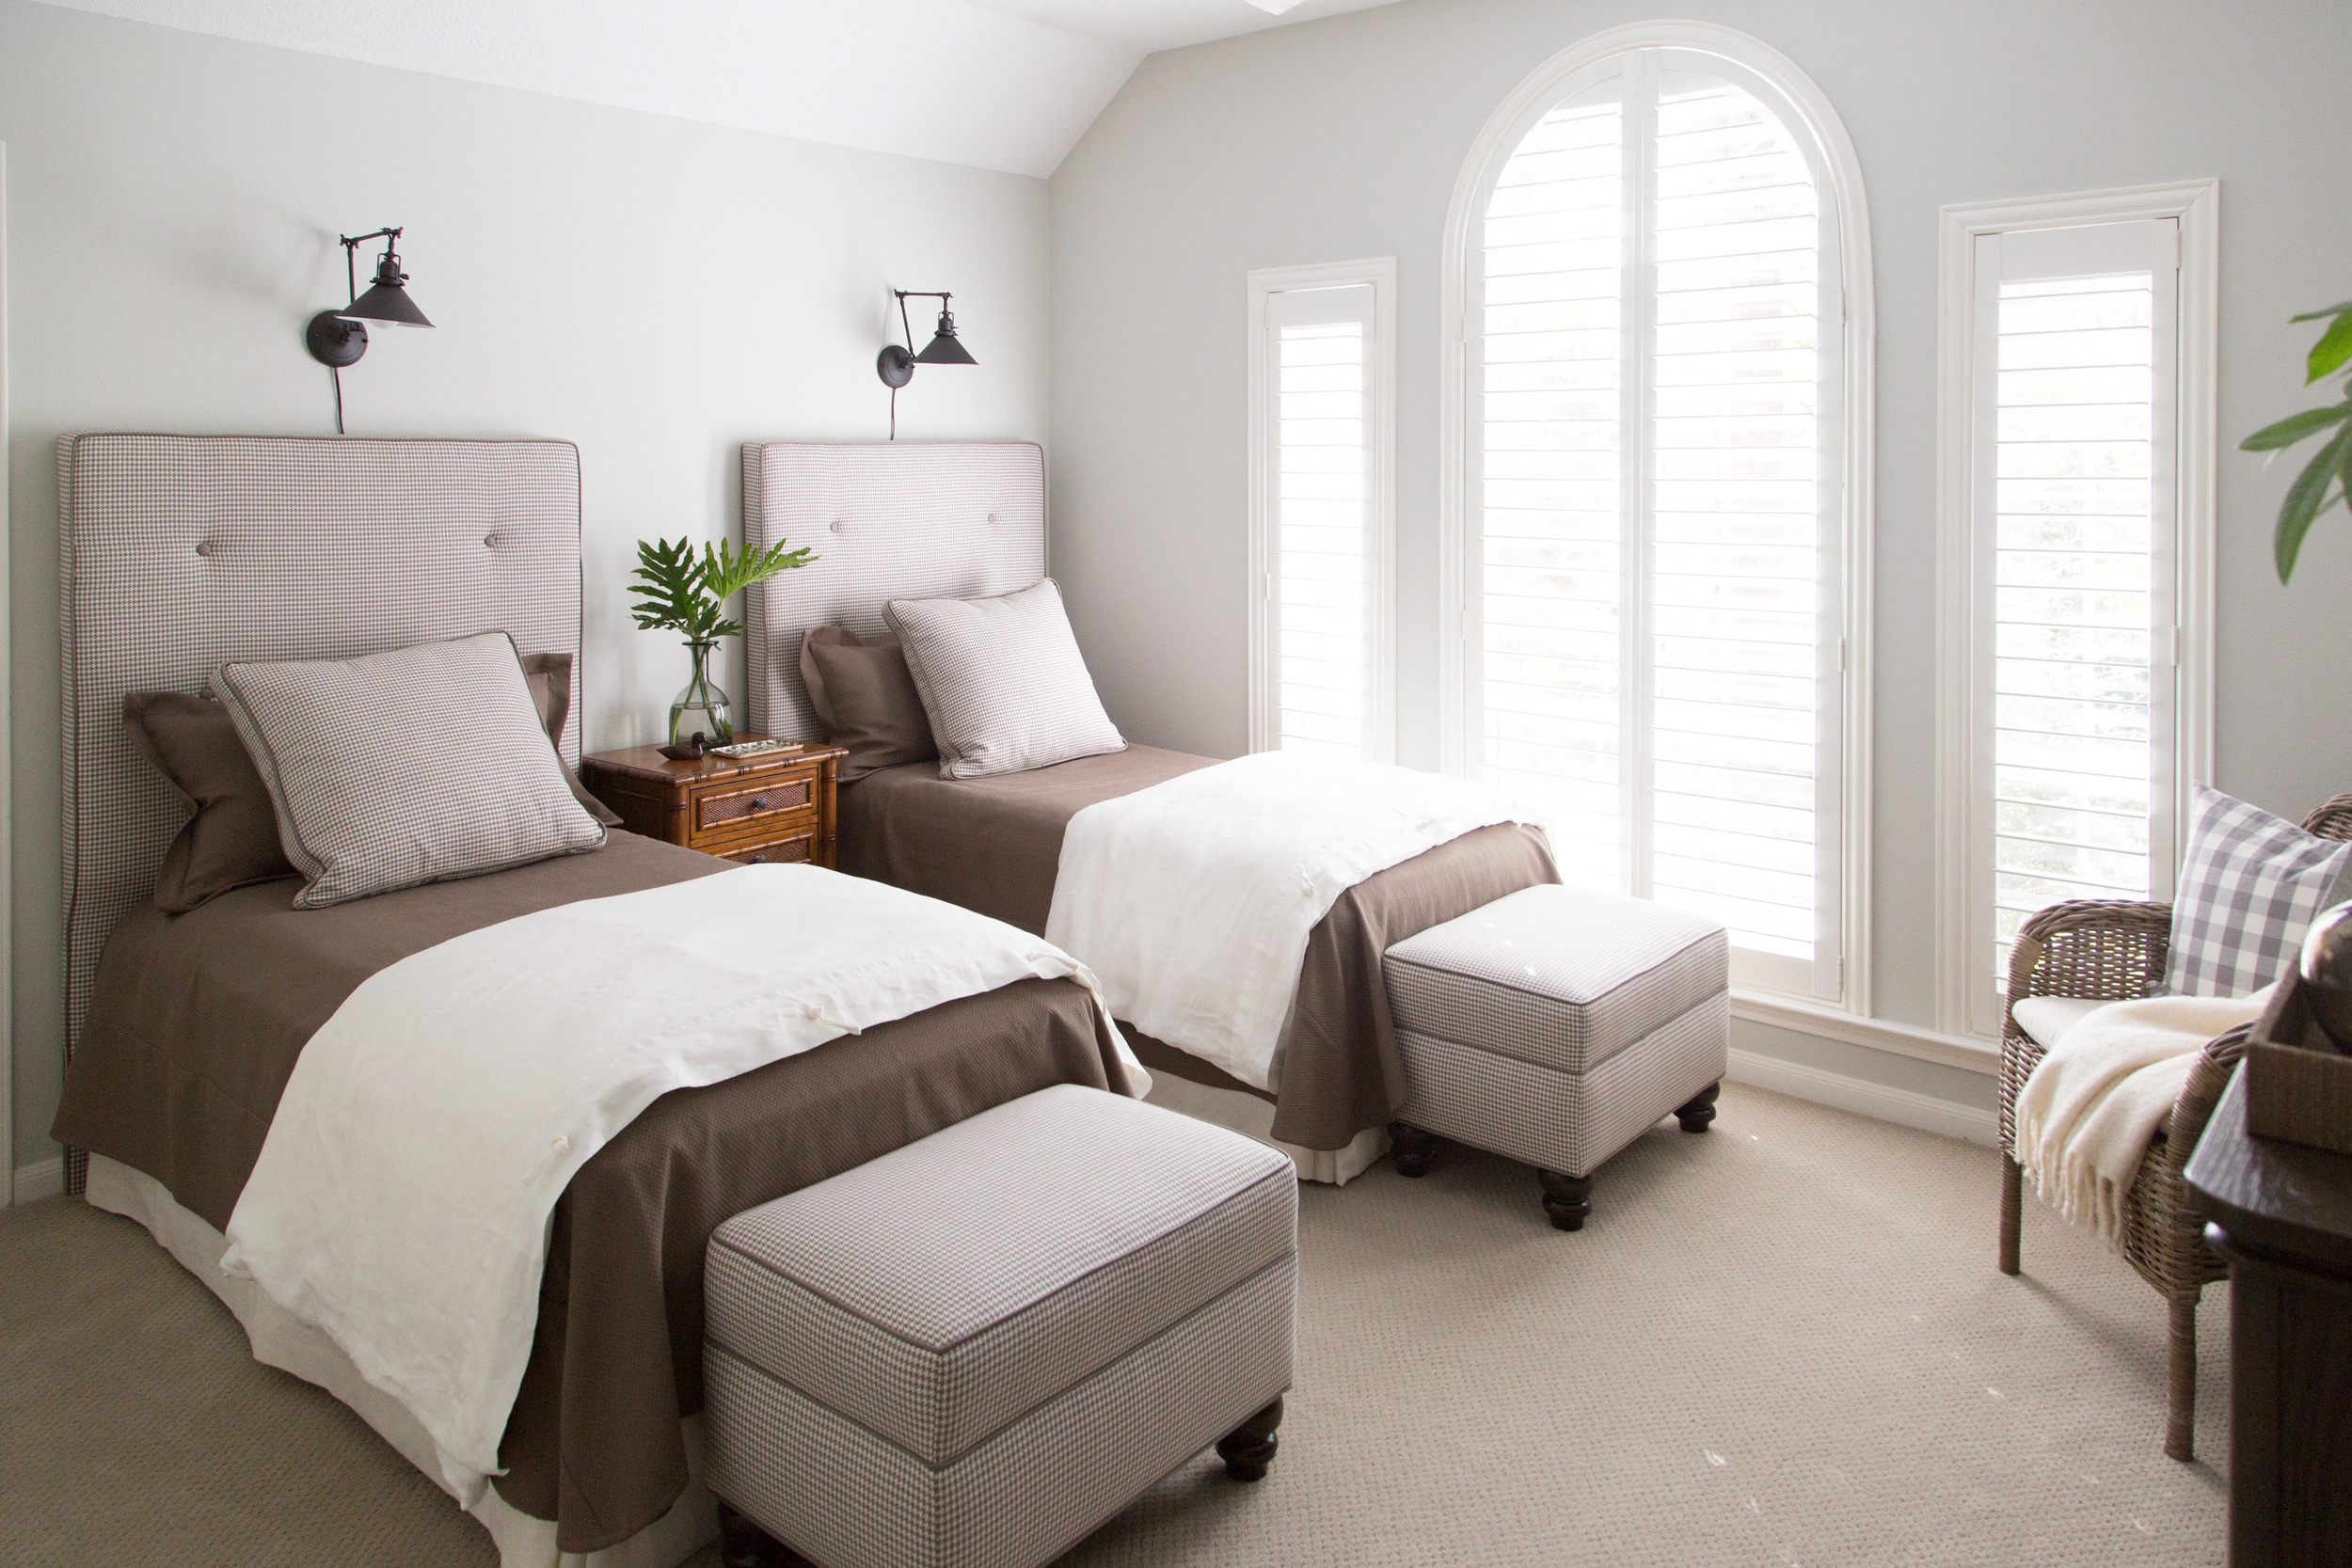 Twin Beds Guestroom with custom headboards, bedding and ottomans, Designer: Carla Aston